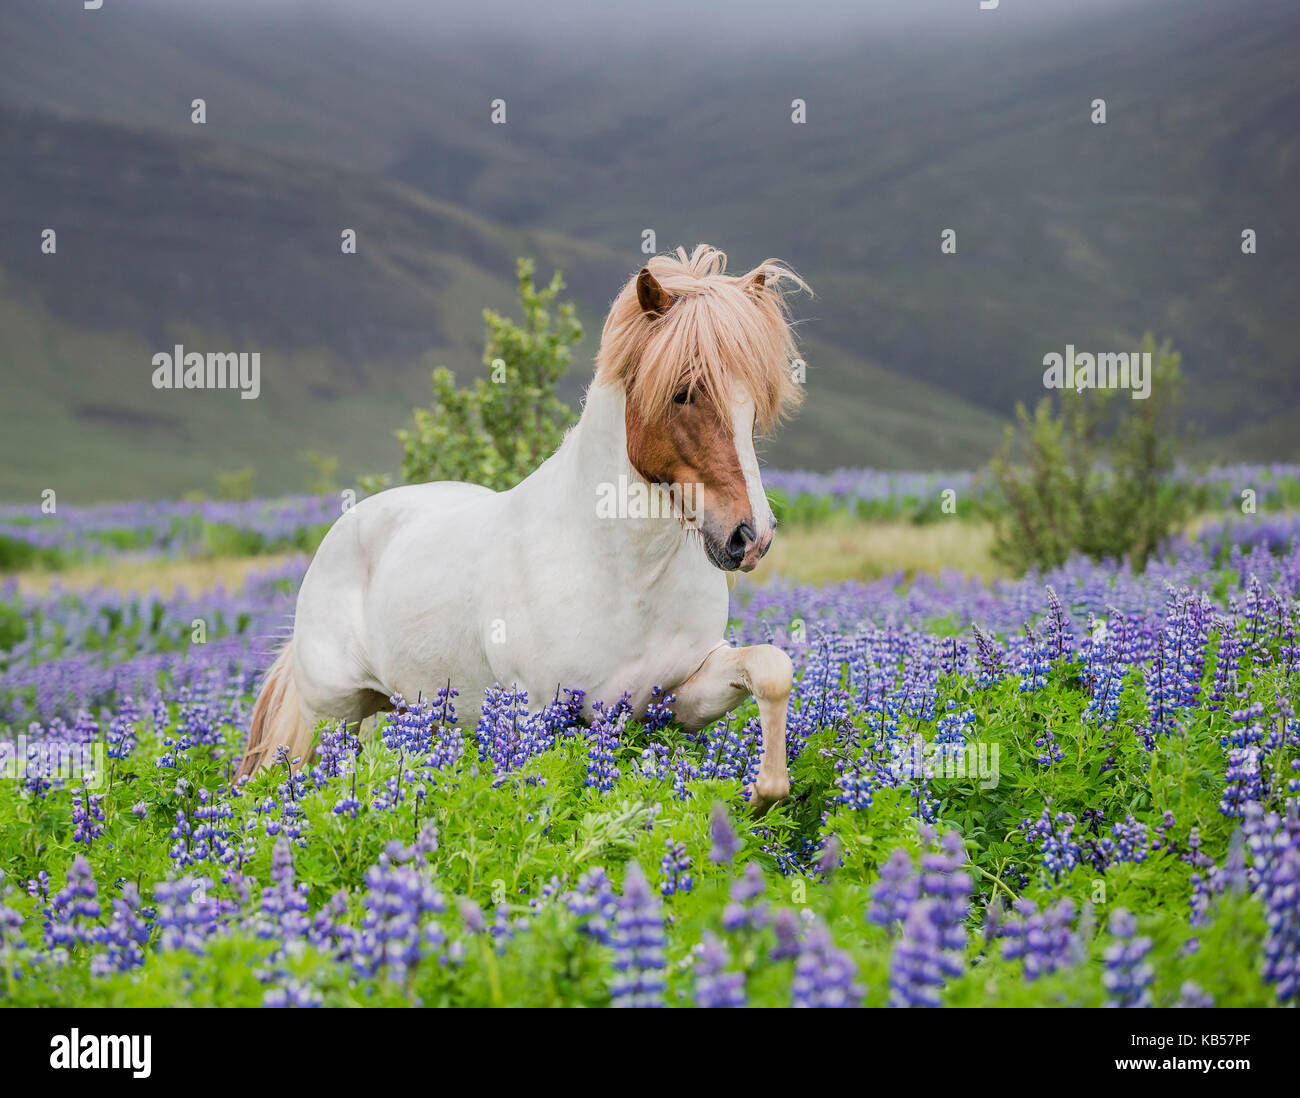 Icelandic Horse running in Lupine fields, Purebred Icelandic horse in the summertime with blooming lupines, Iceland, - Stock Image